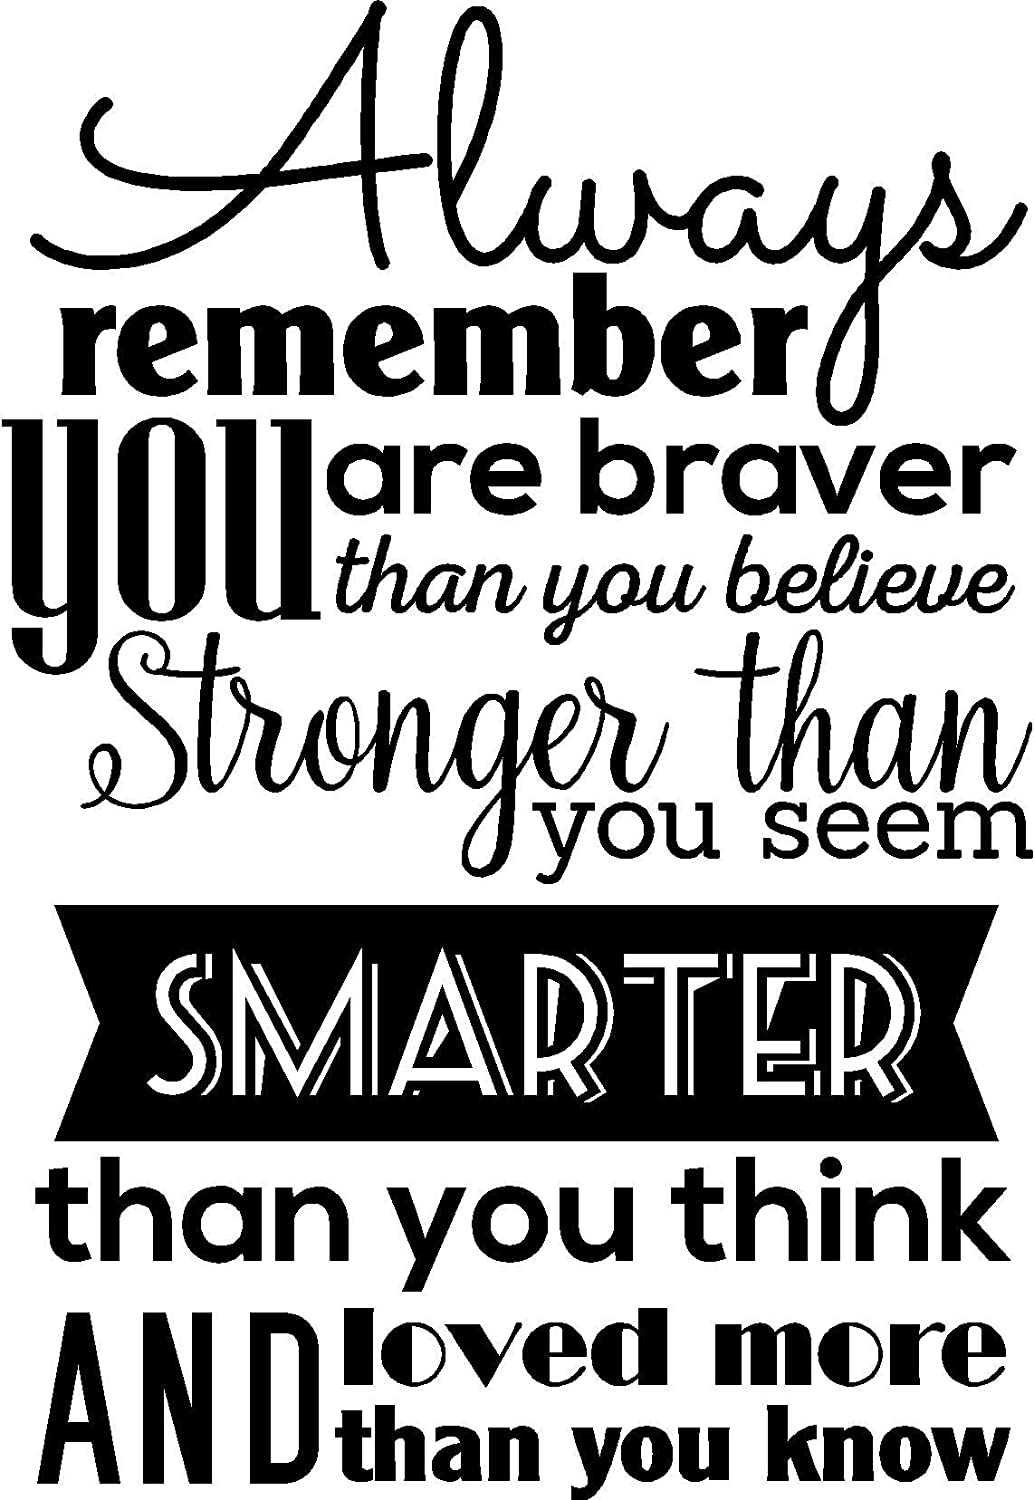 Home Wall Decal Decor - Always Remember You are Braver Than You Believe - Vinyl Wall Decals Sayings Words Art Decor Lettering Wall Art Inspirational Uplifting